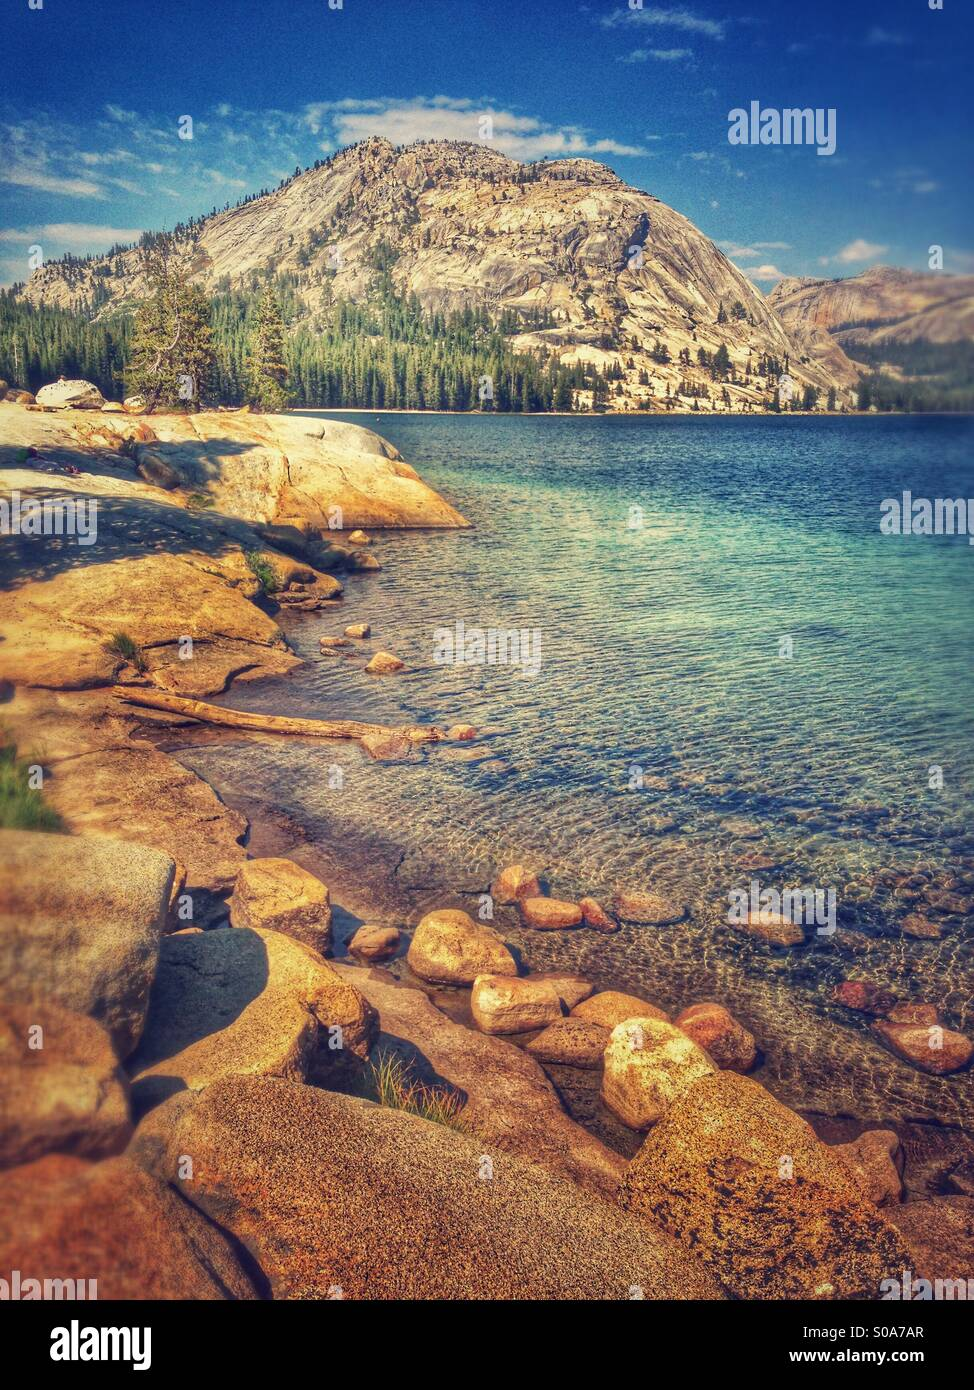 Mountain Lake. - Stock Image